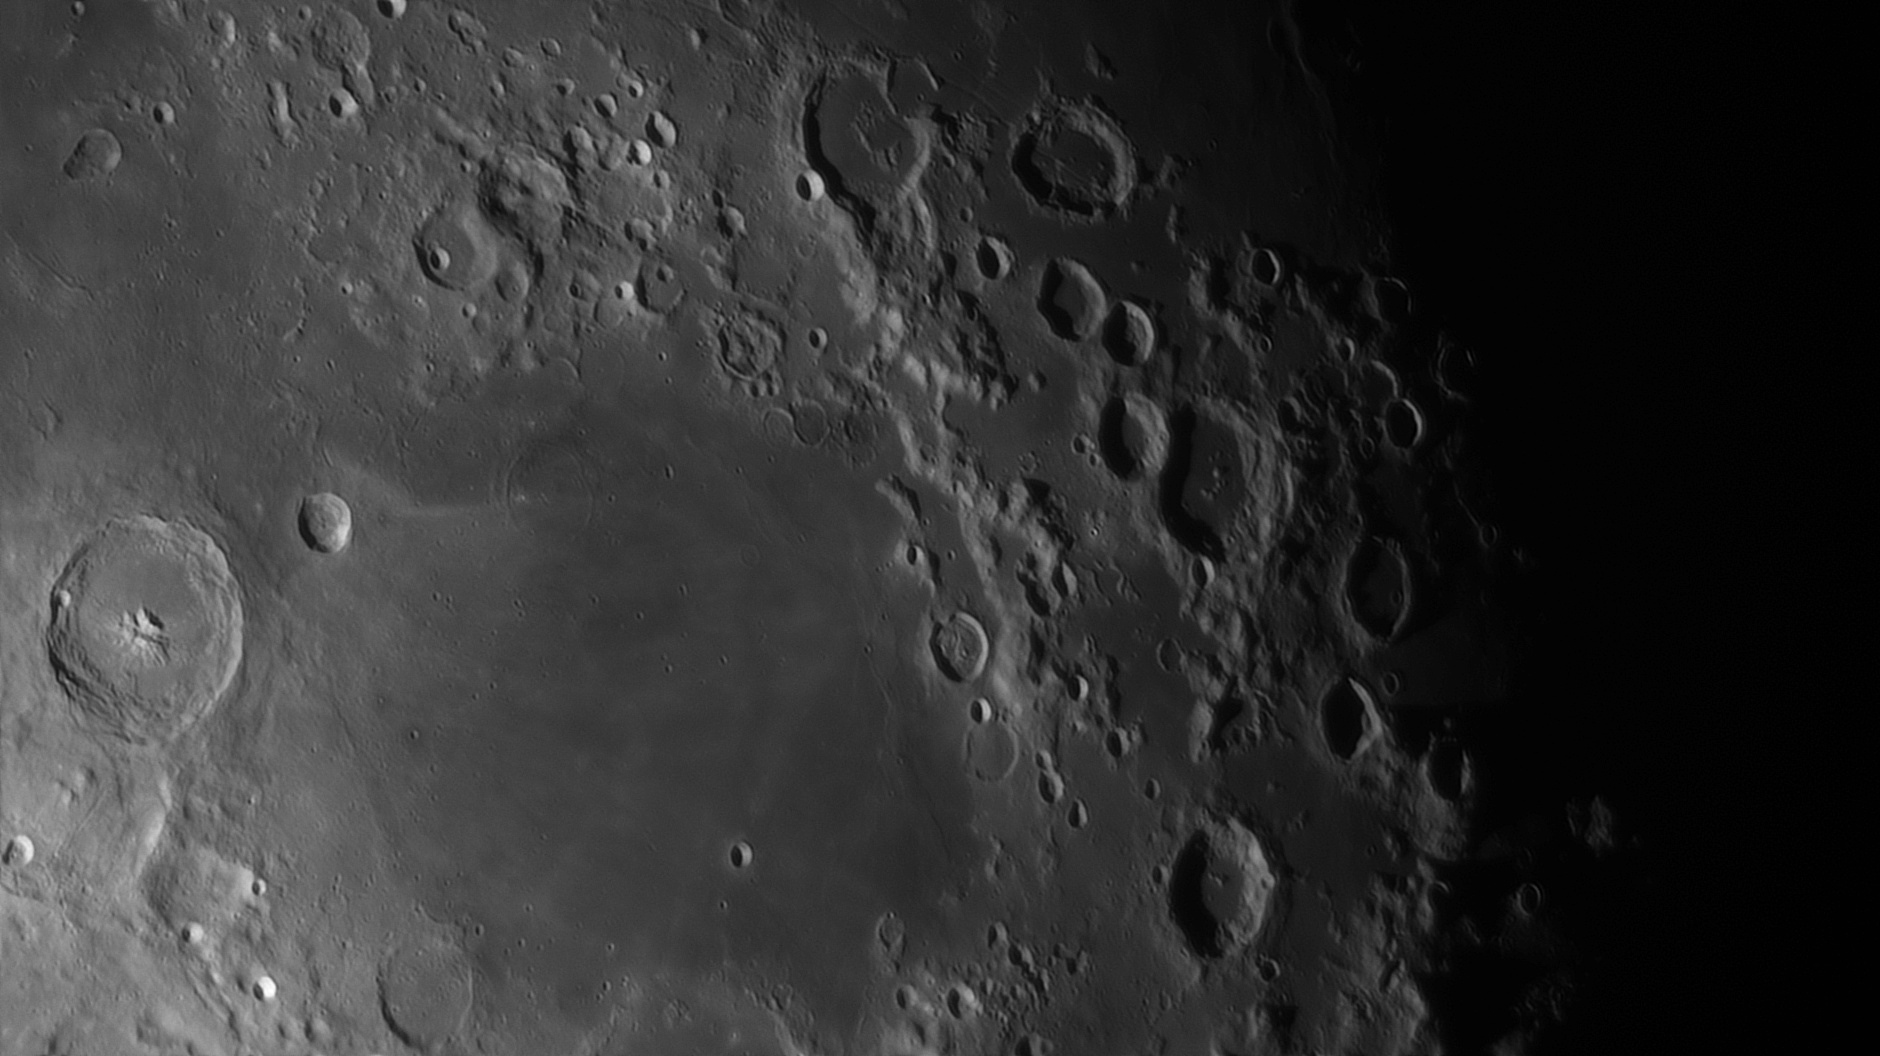 5e56c92e4331f_Moon_055629_120220_ZWOASI290MM_IR_742nm_AS_P30_lapl4_ap1143_AI_Deconvolution_12.jpg.7827737c5faea2e57c303b07f392f8c1.jpg